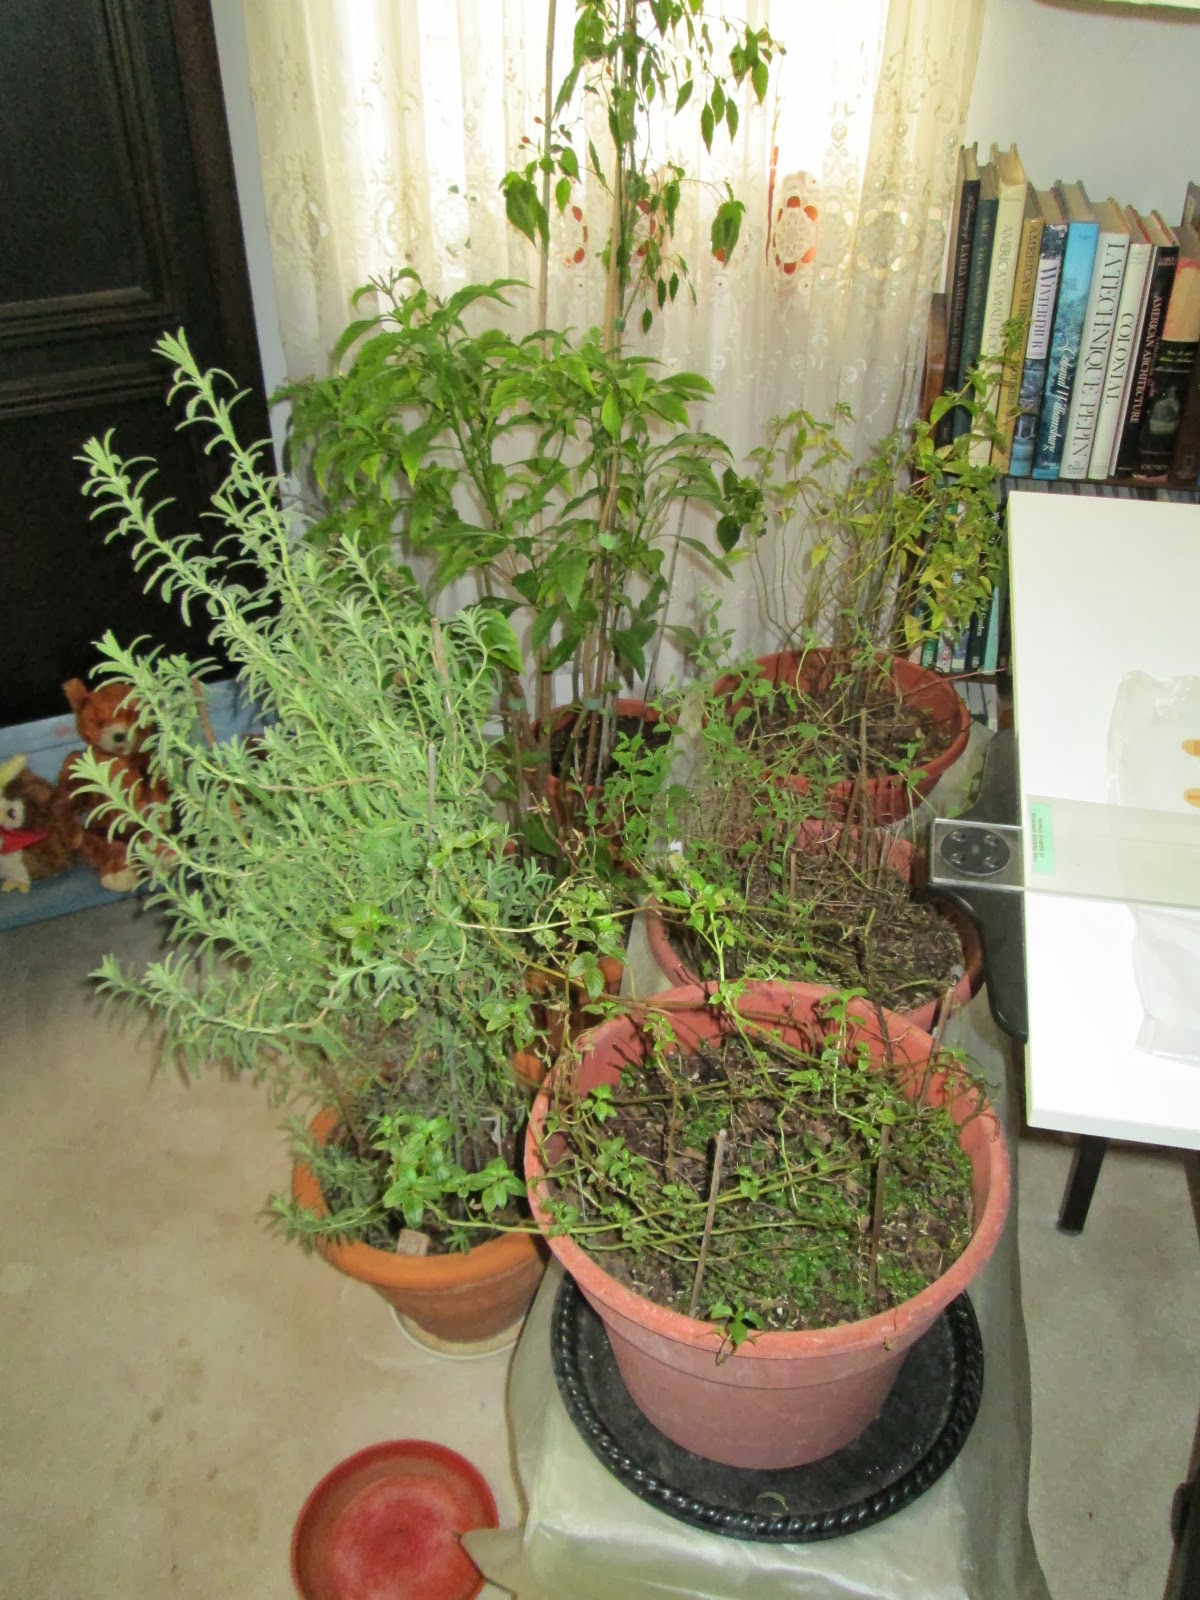 lemon verbena lady u0027s herb garden the indoor winter landscape